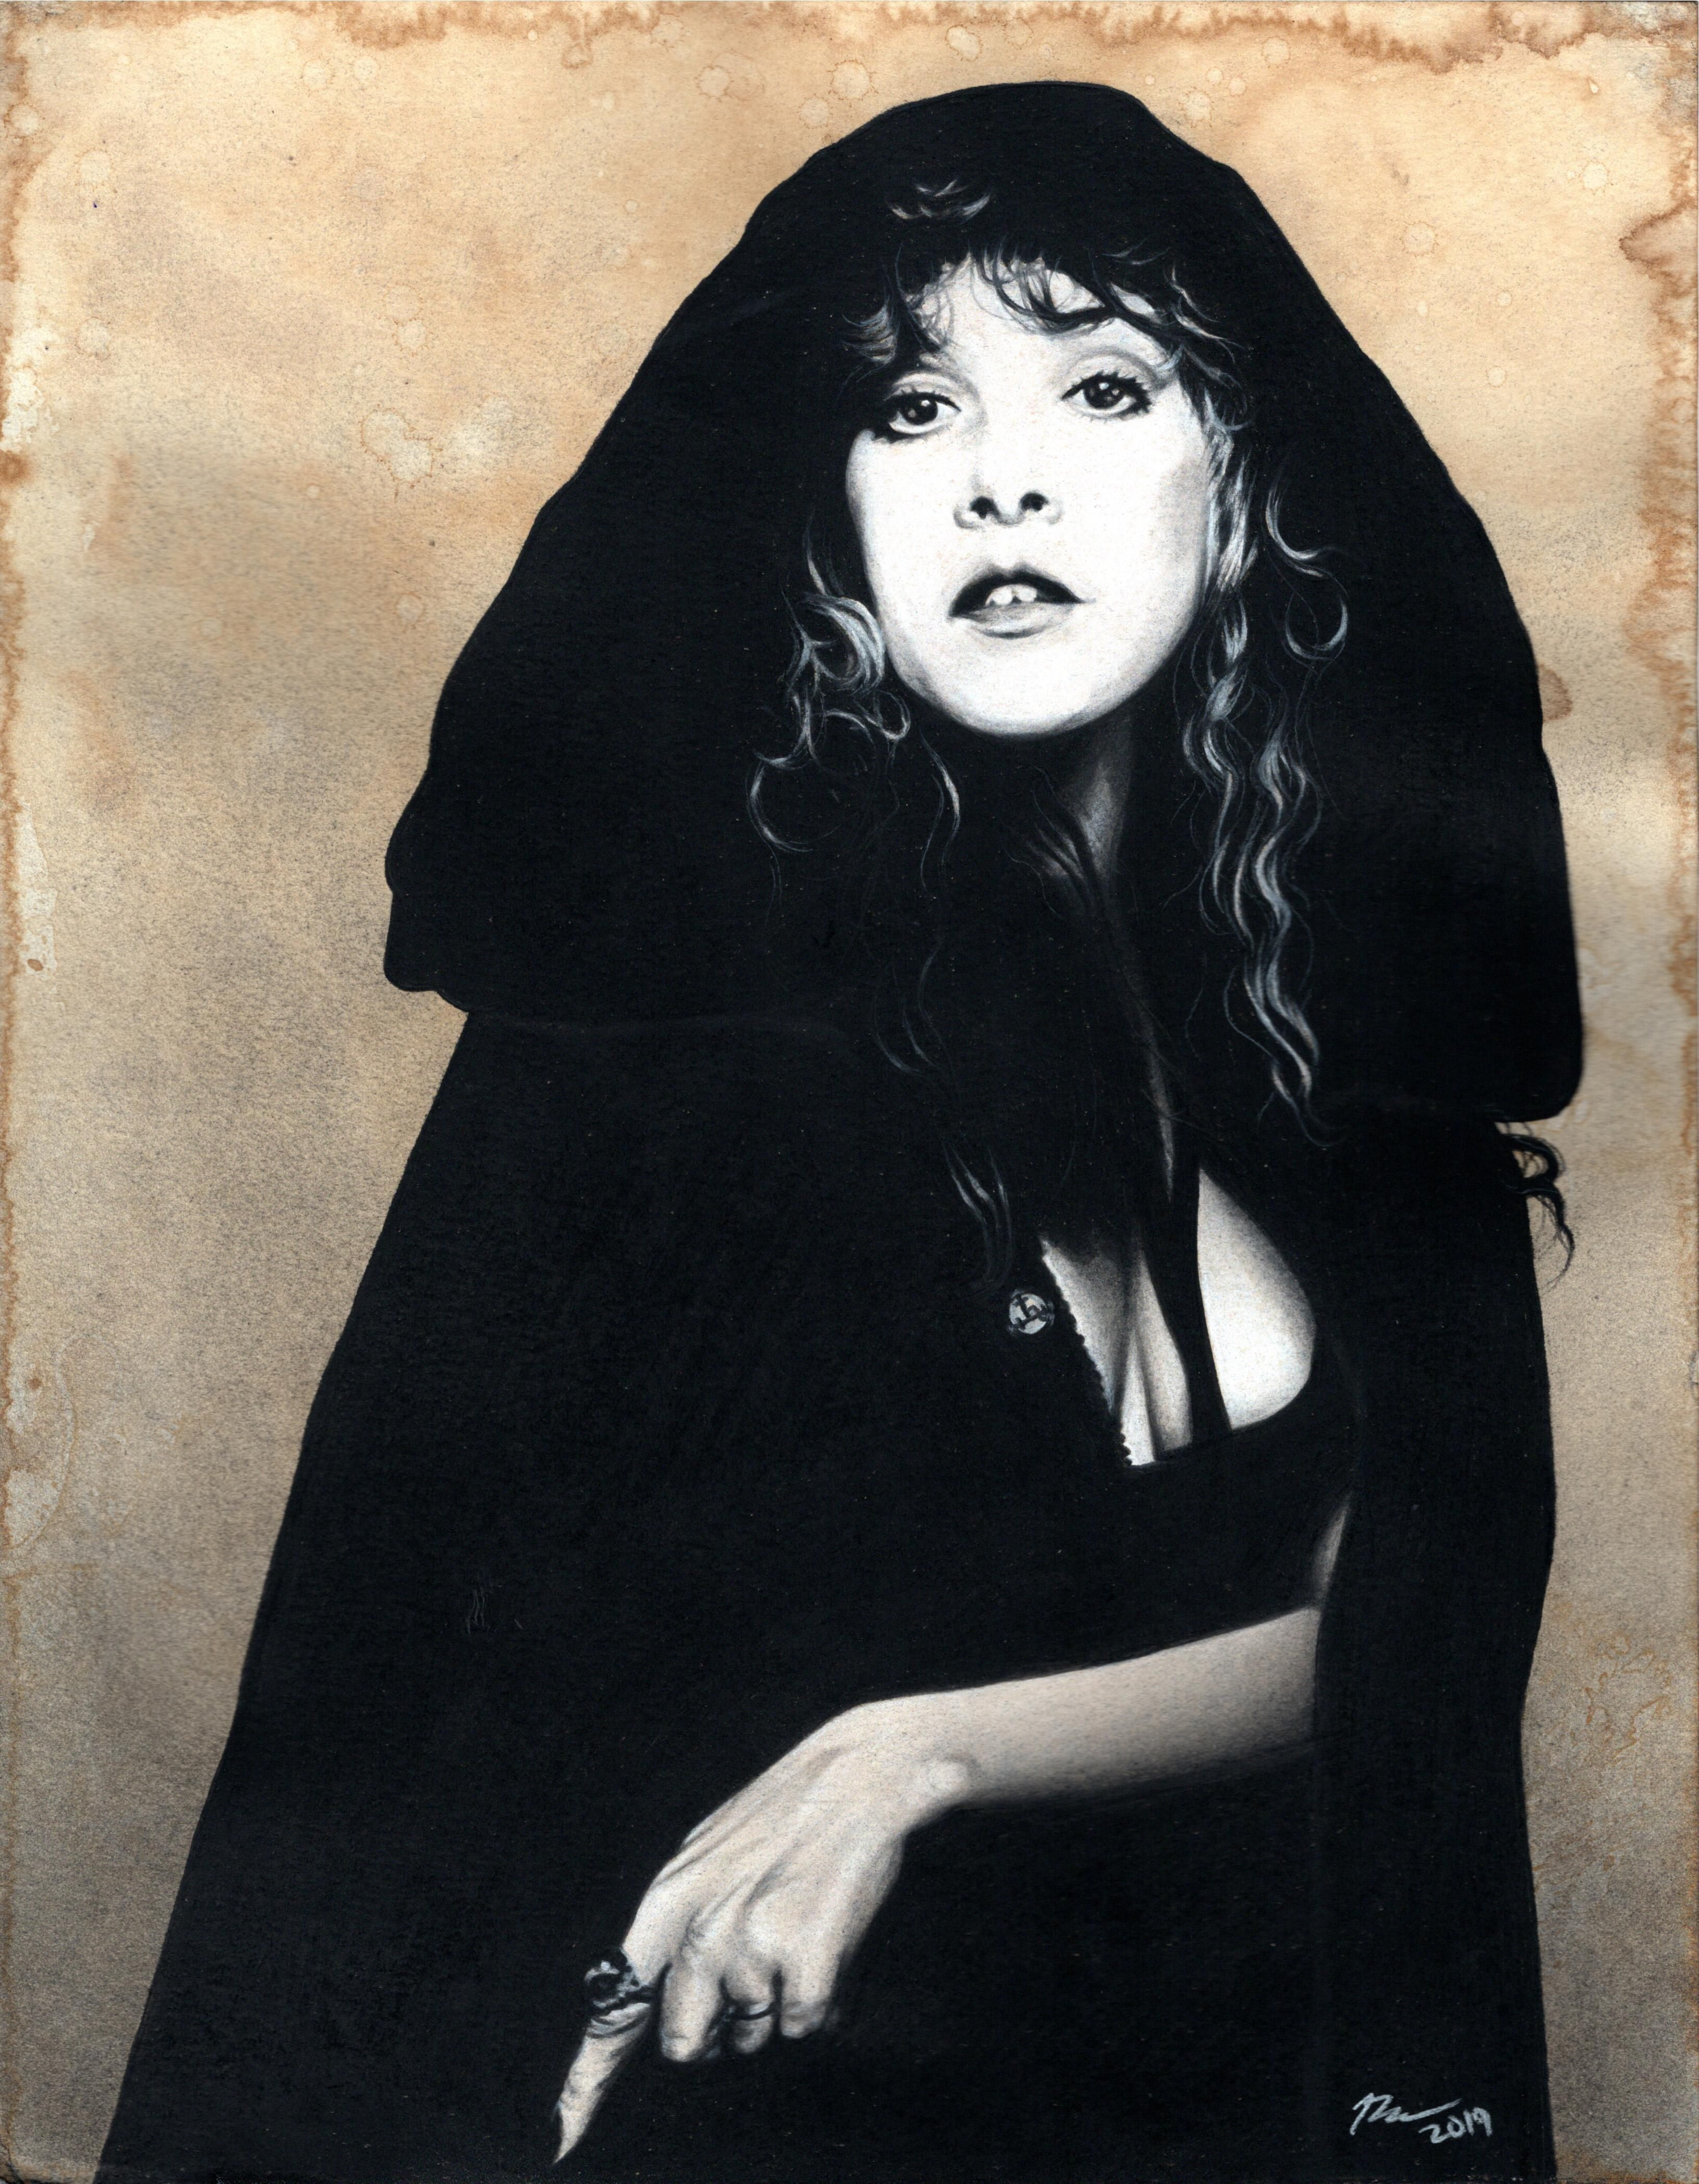 I Have Been Wanting To Draw A Witchy Stevie Nicks For Awhile Now And I Finally Did 11x14 Inches Charcoal On Coffee S Charcoal Drawing Drawings Stevie Nicks